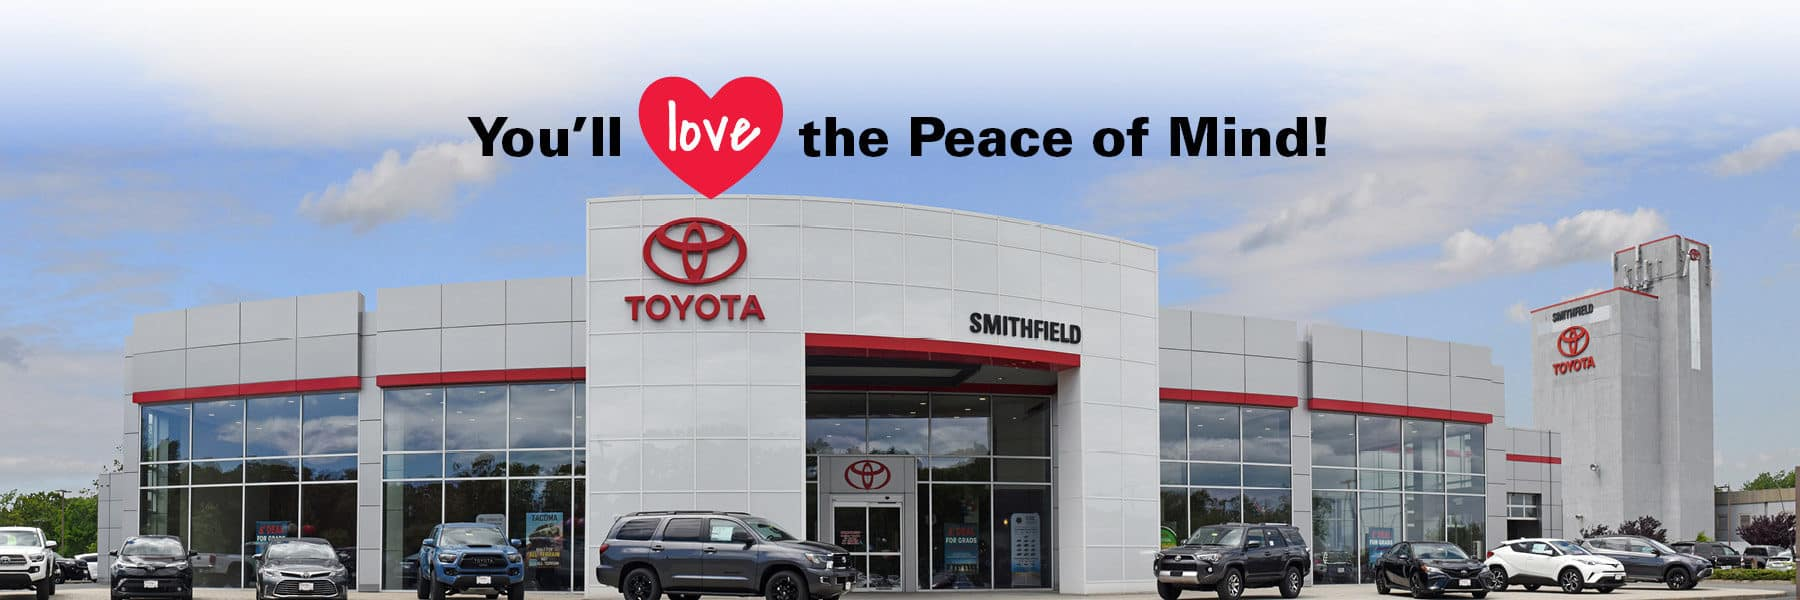 You'll Love the Peace of Mind at Toyota of Smithfield!